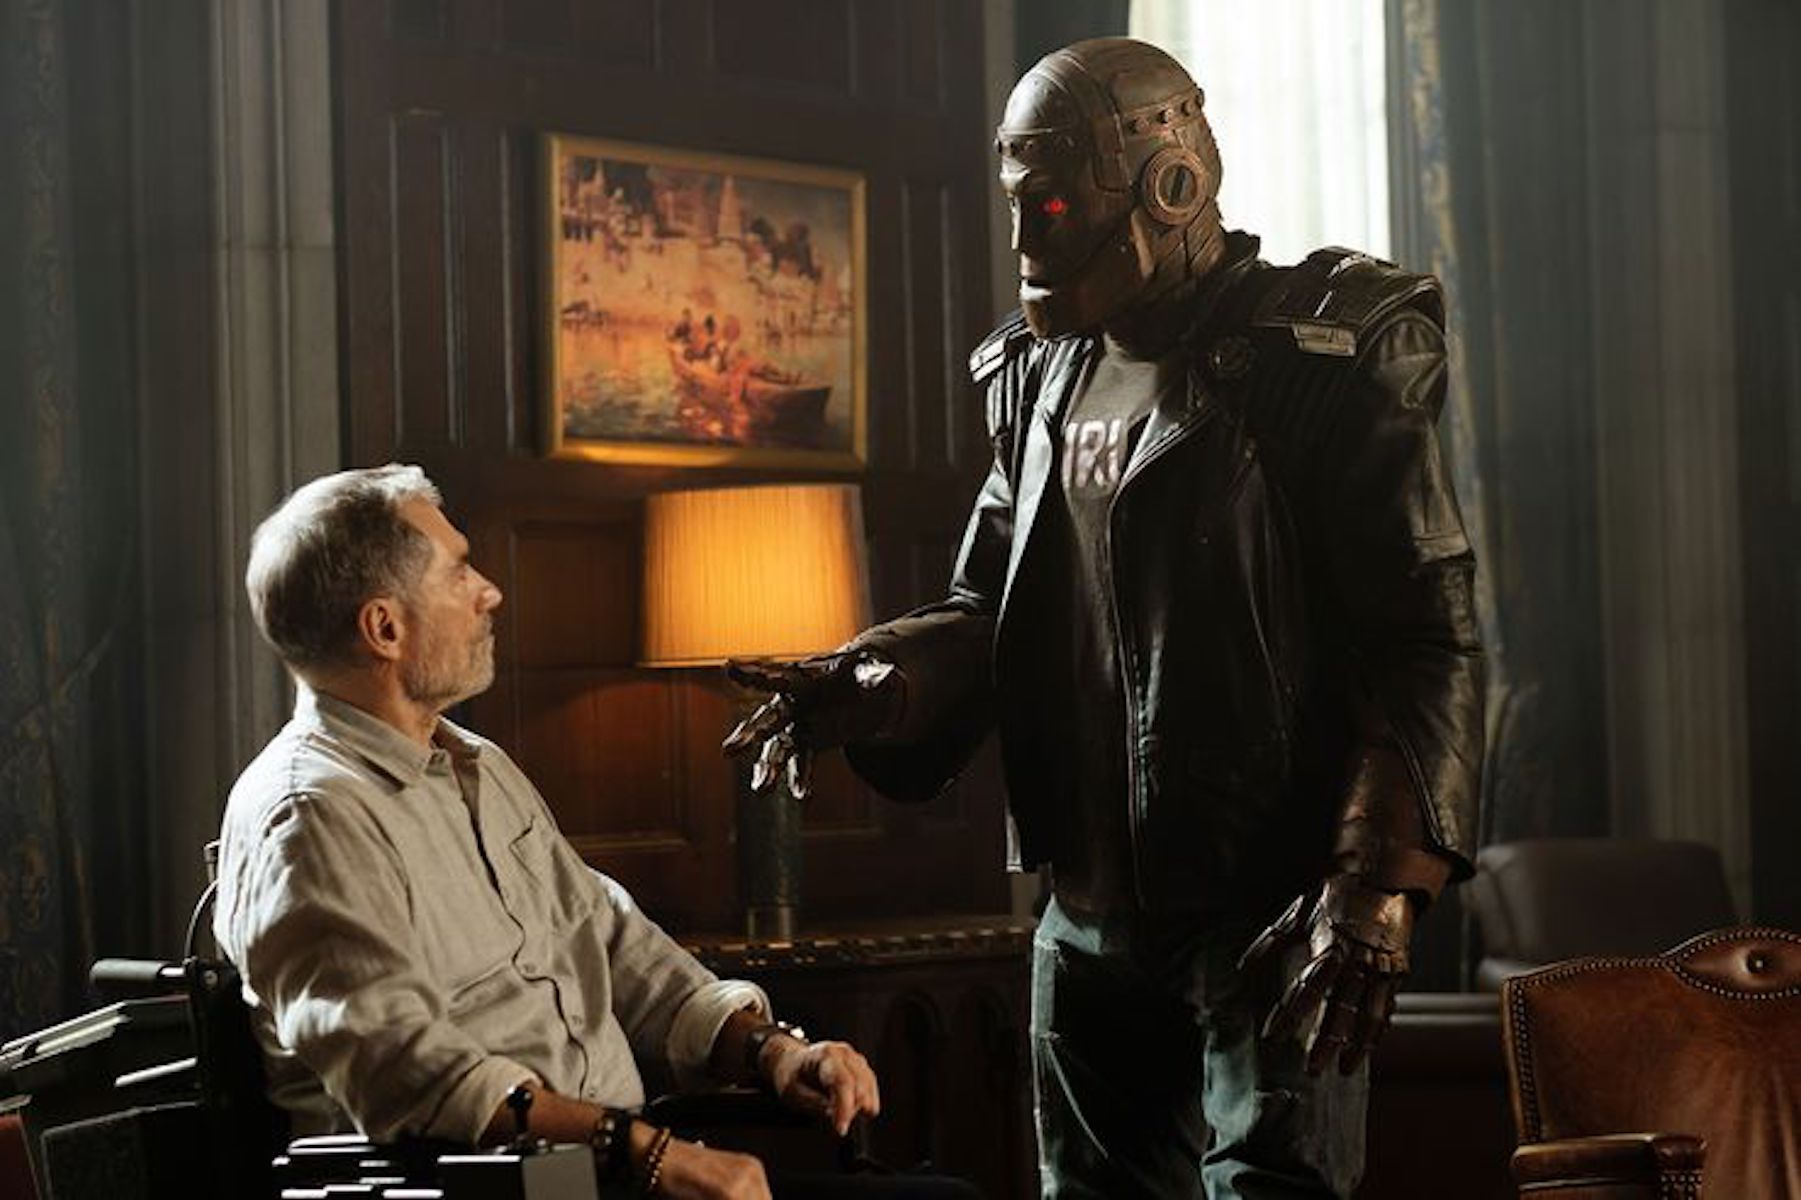 The Chief and Robotman